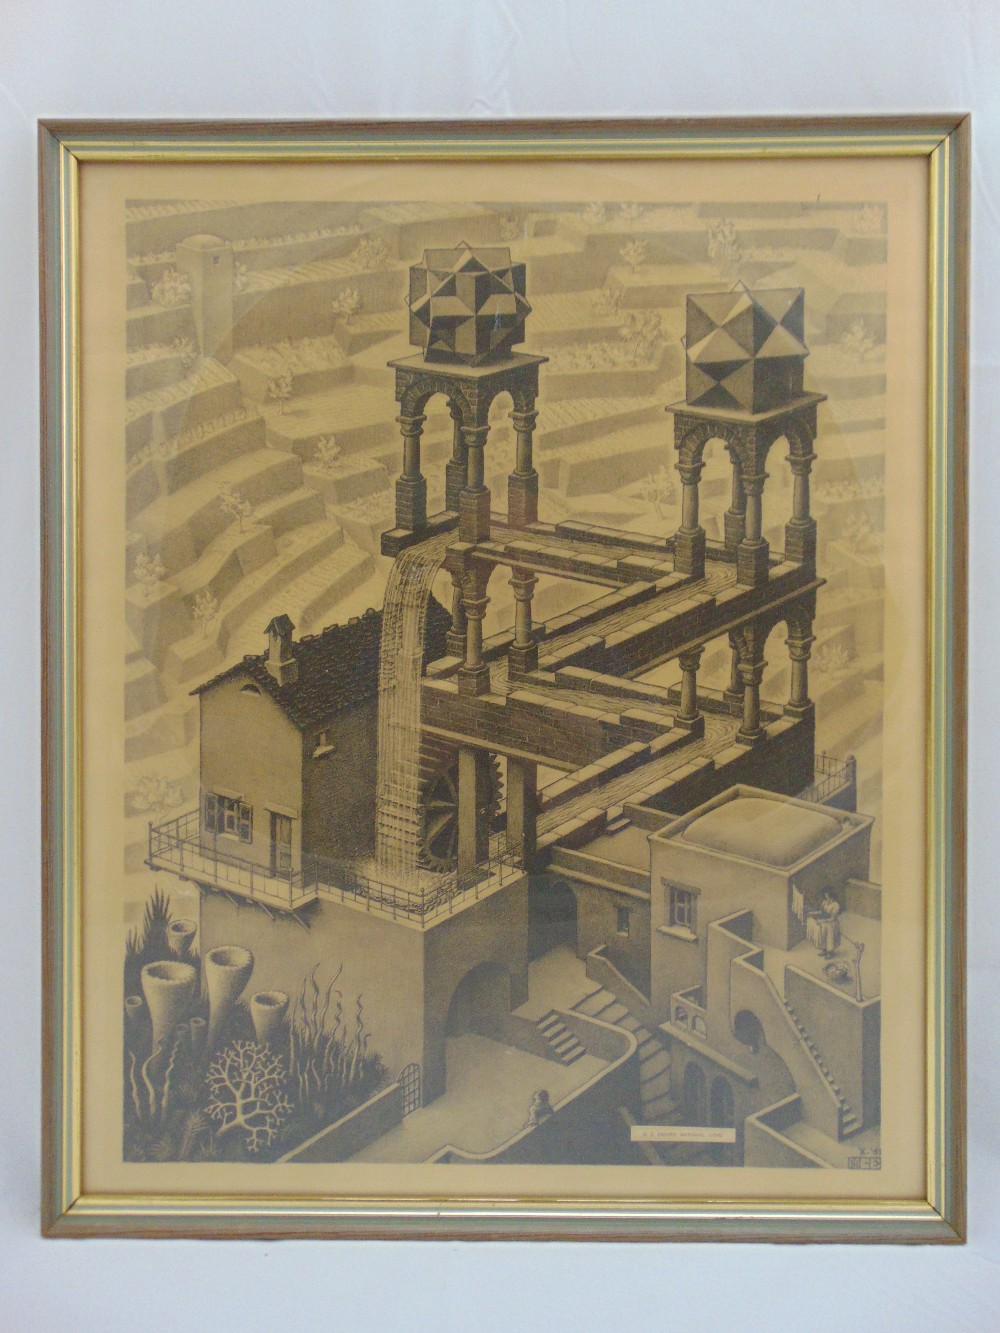 Lot 35 - M. S. Escher framed and glazed monochromatic etching titled Waterfall, 51 x 40cm